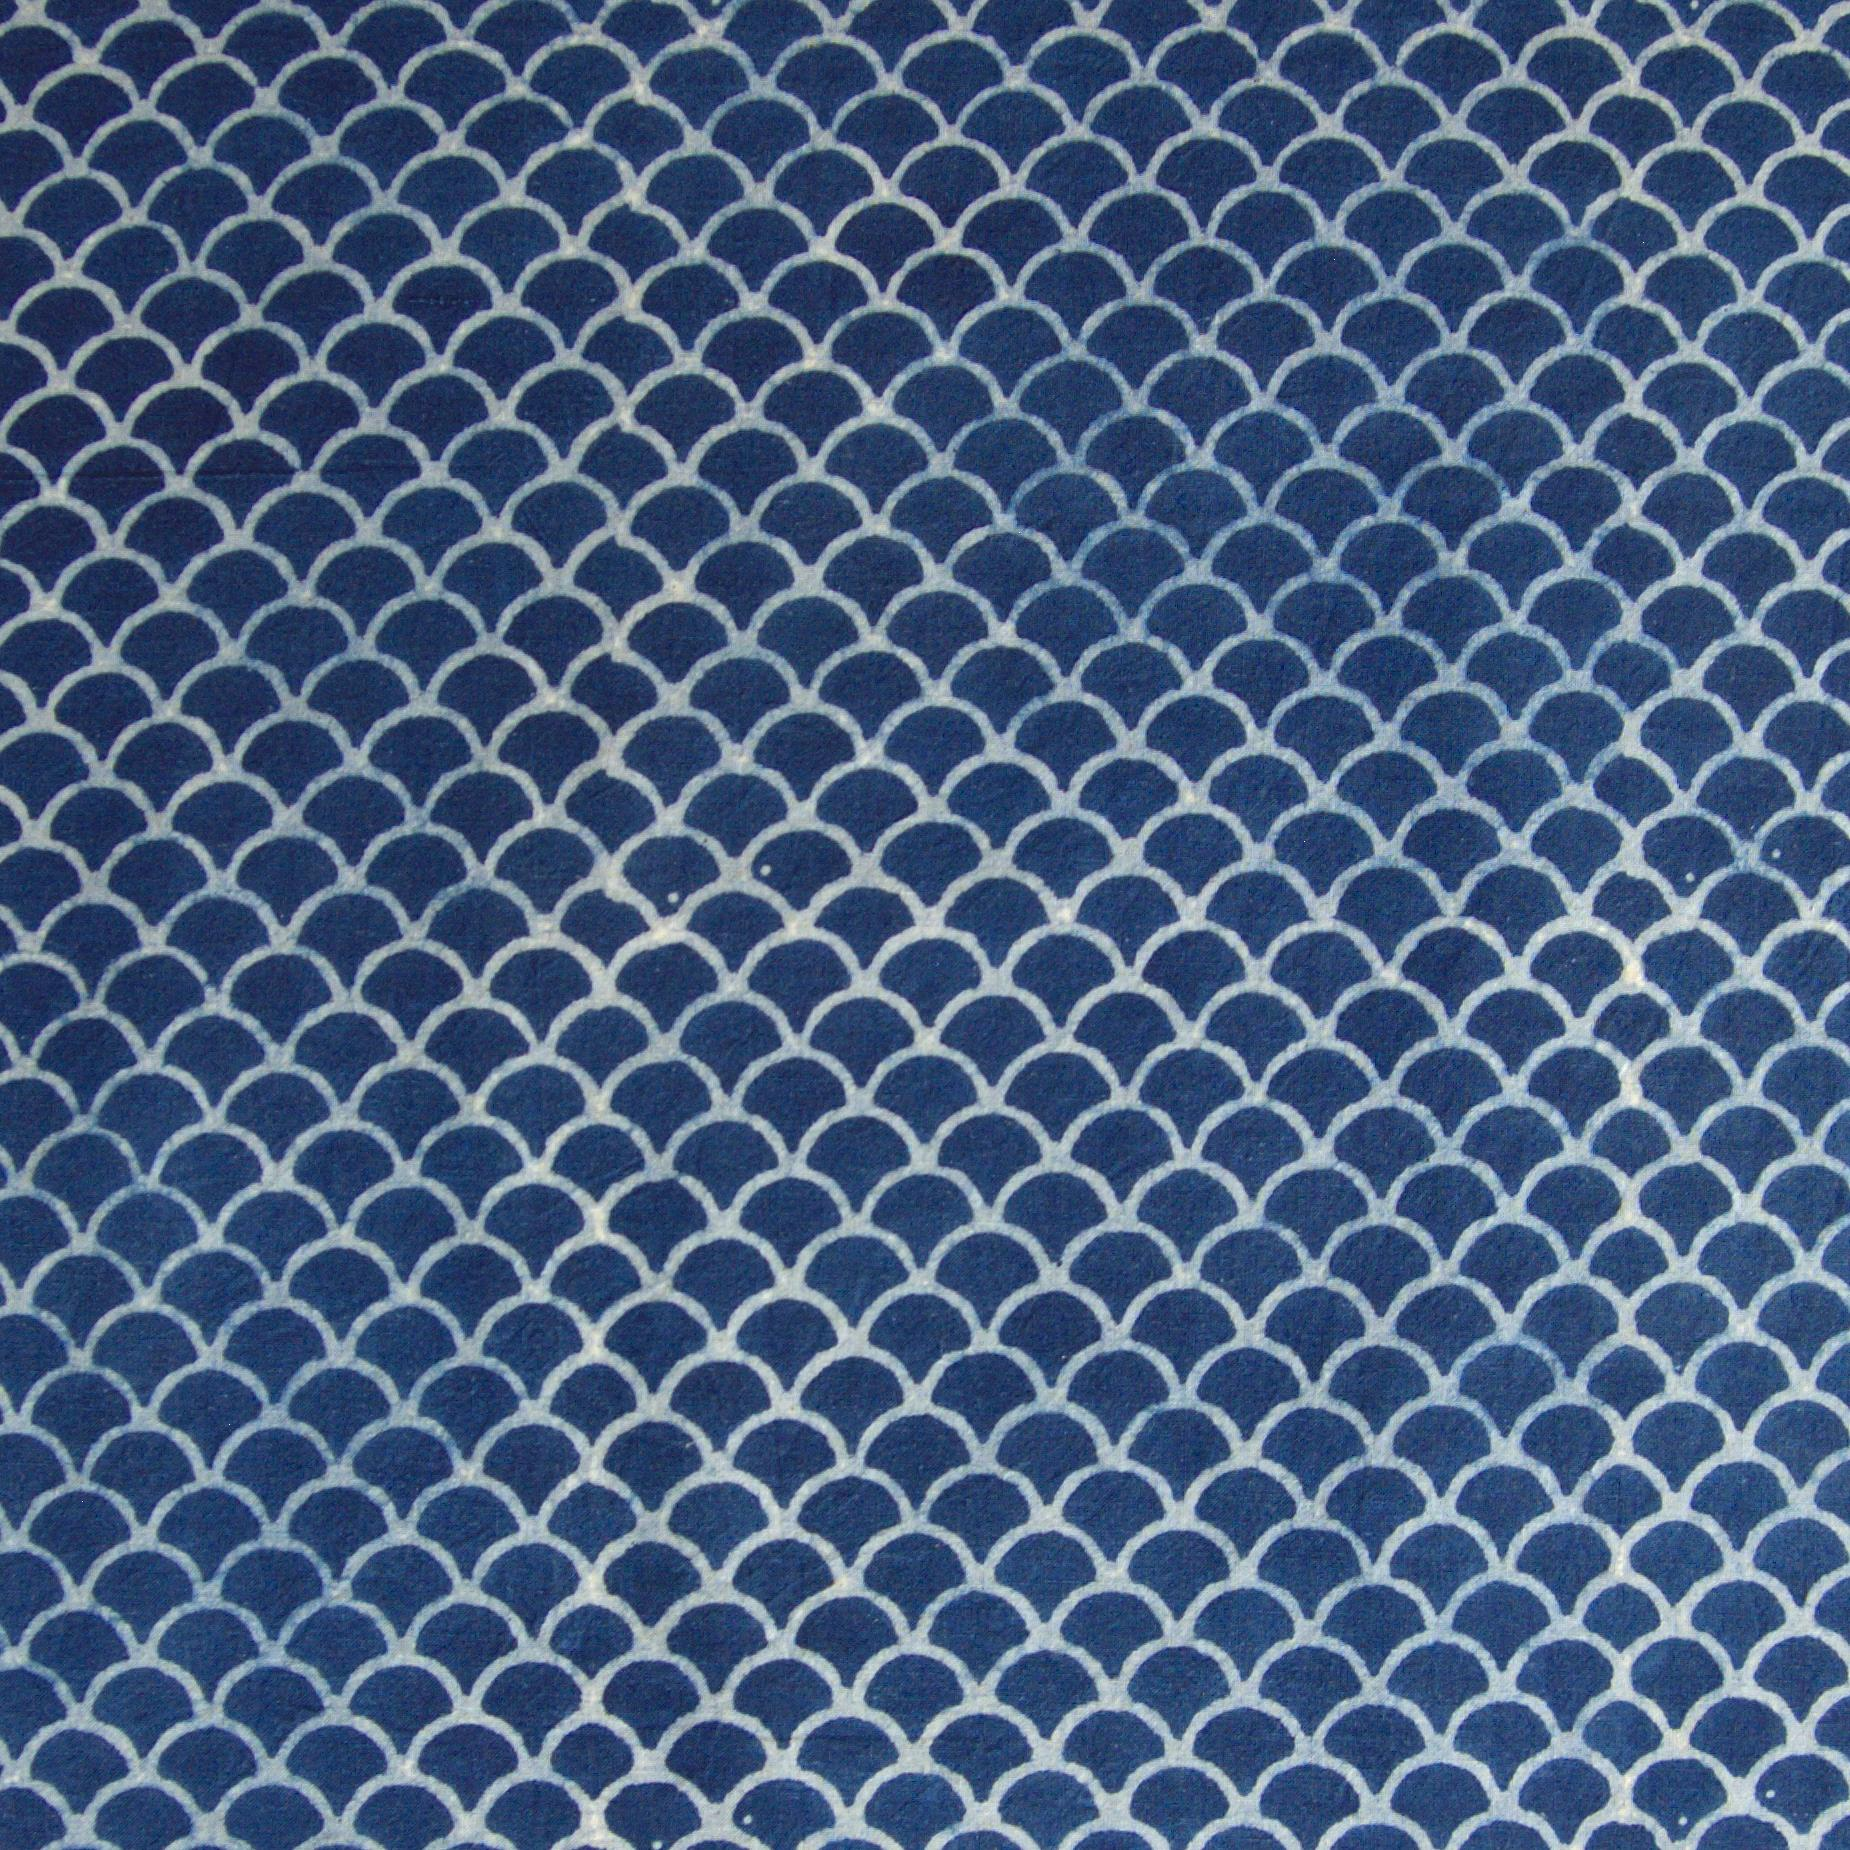 100% Block-Printed Cotton Fabric From India- Ajrak - Indigo White Resist Scales Print